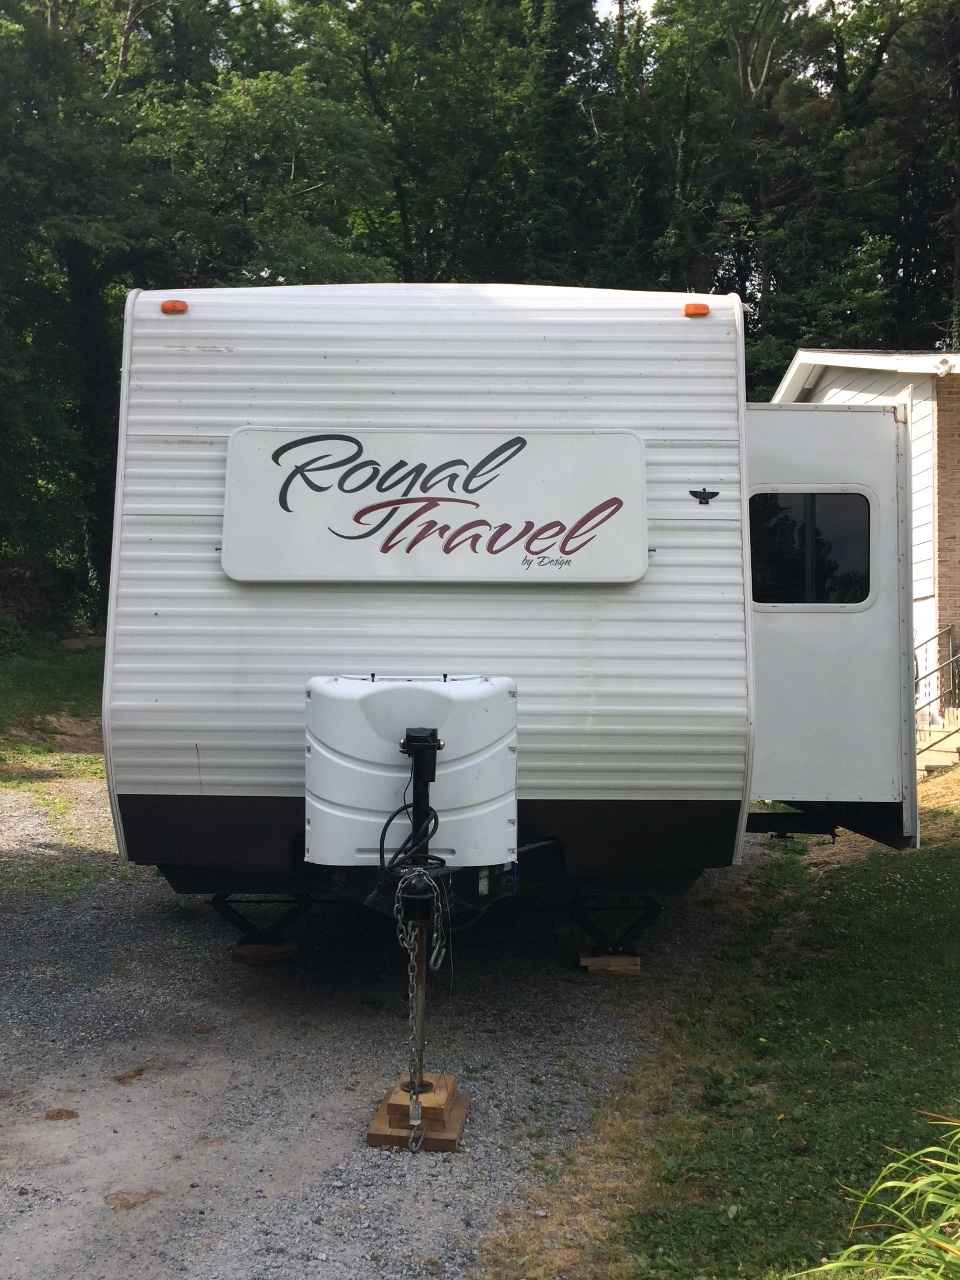 2014 Used Recreation By Design Royal Travel M 36fb Travel